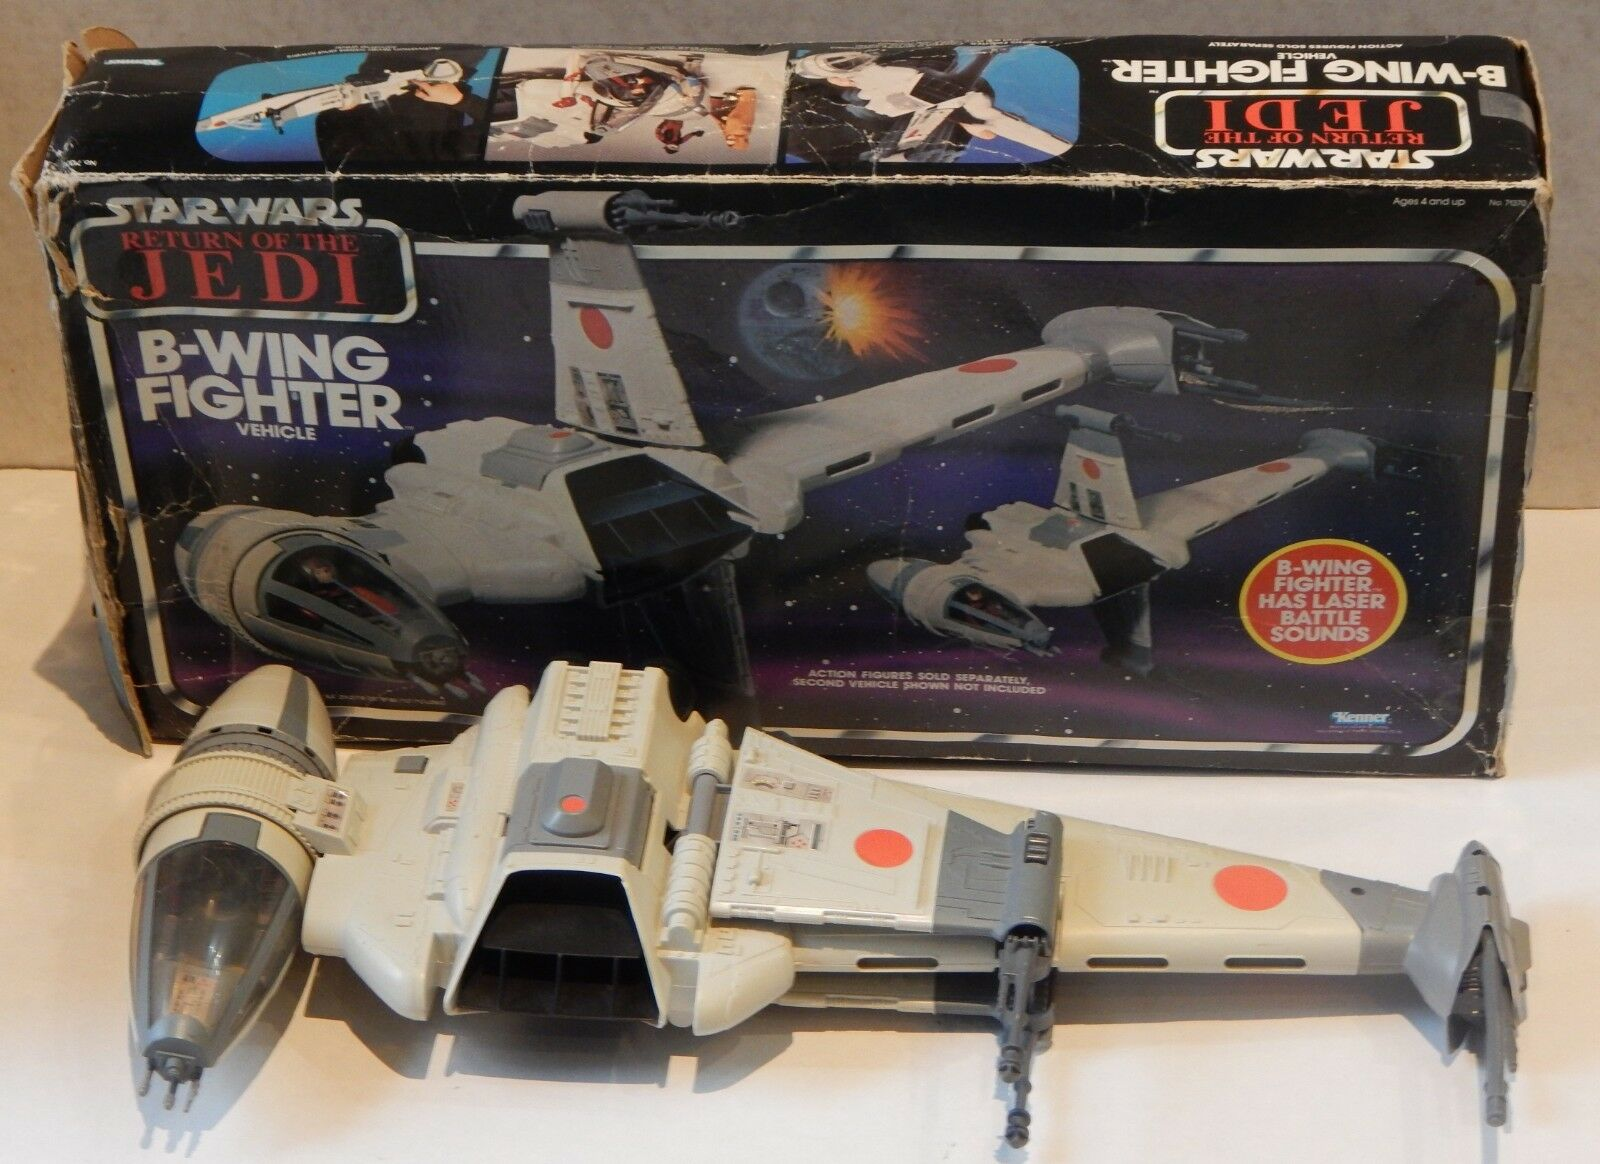 1983 vintage Star Wars B-WING FIGHTER Kenner action figure vehicle w/ BOX ROTJ